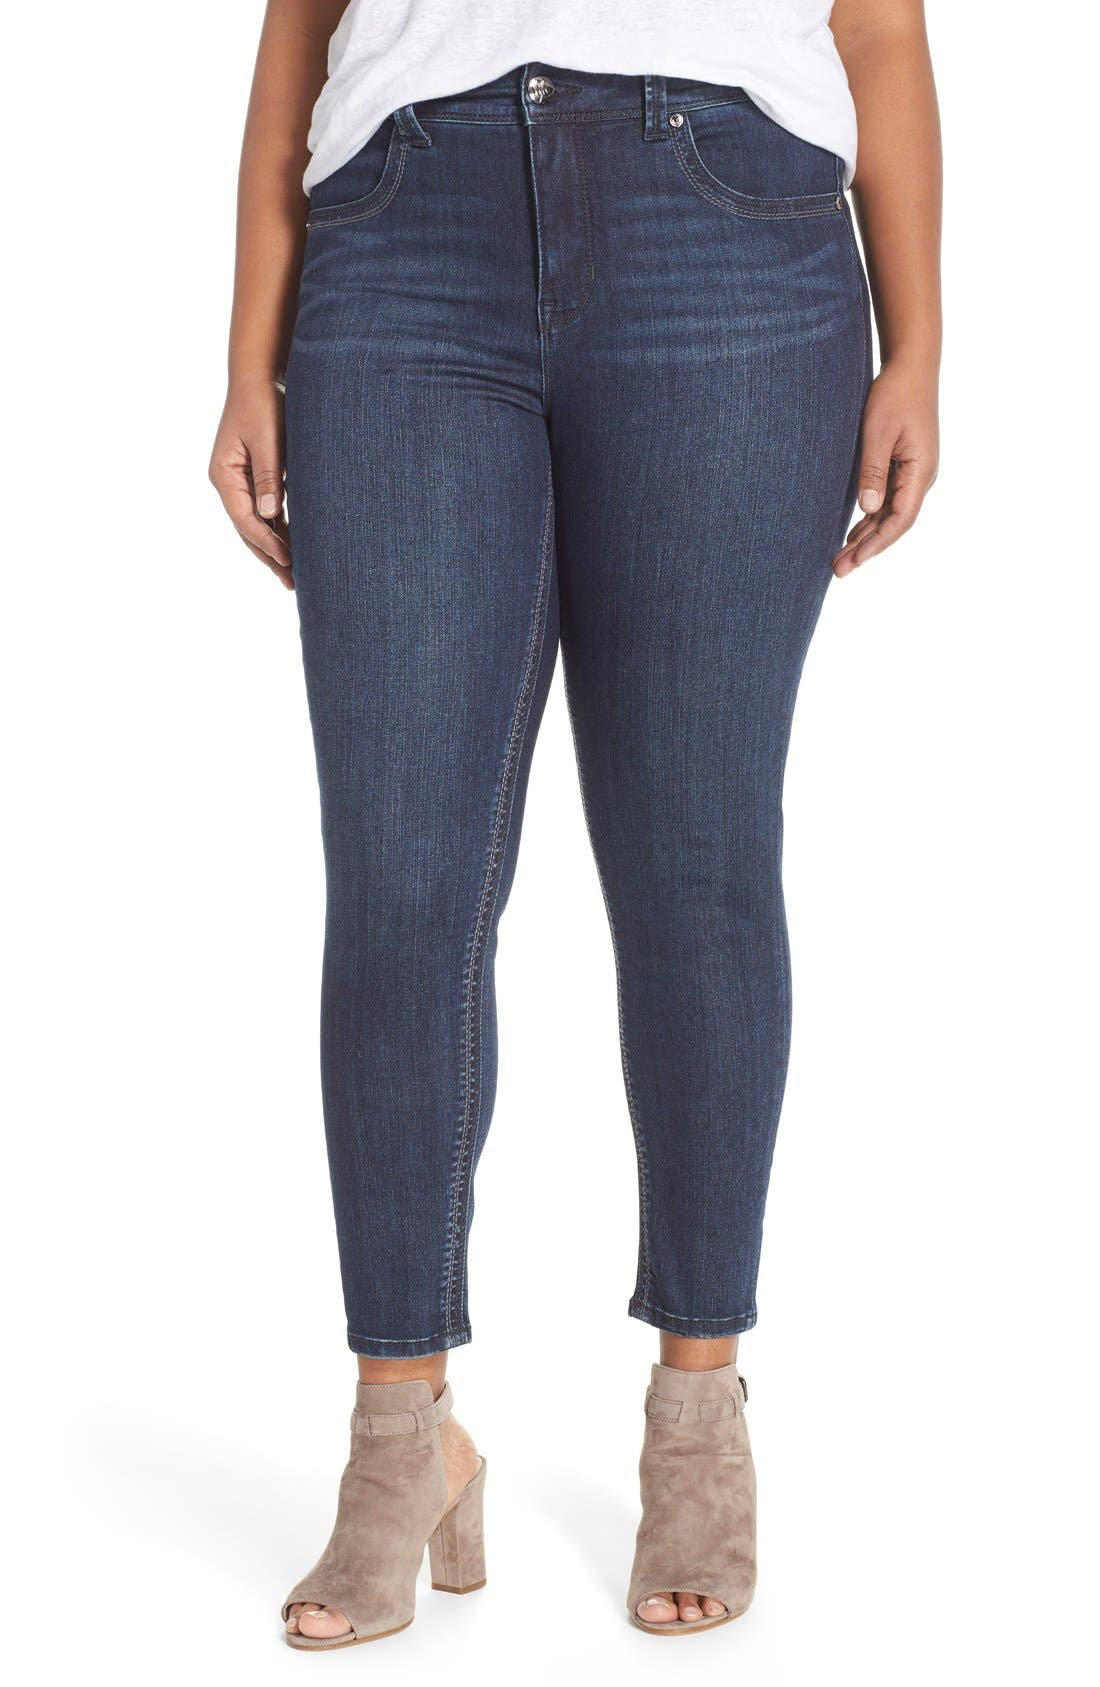 Alternate Image 1 Selected - Melissa McCarthy Seven7 High Rise Pencil Jeans (Blissful) (Plus Size)